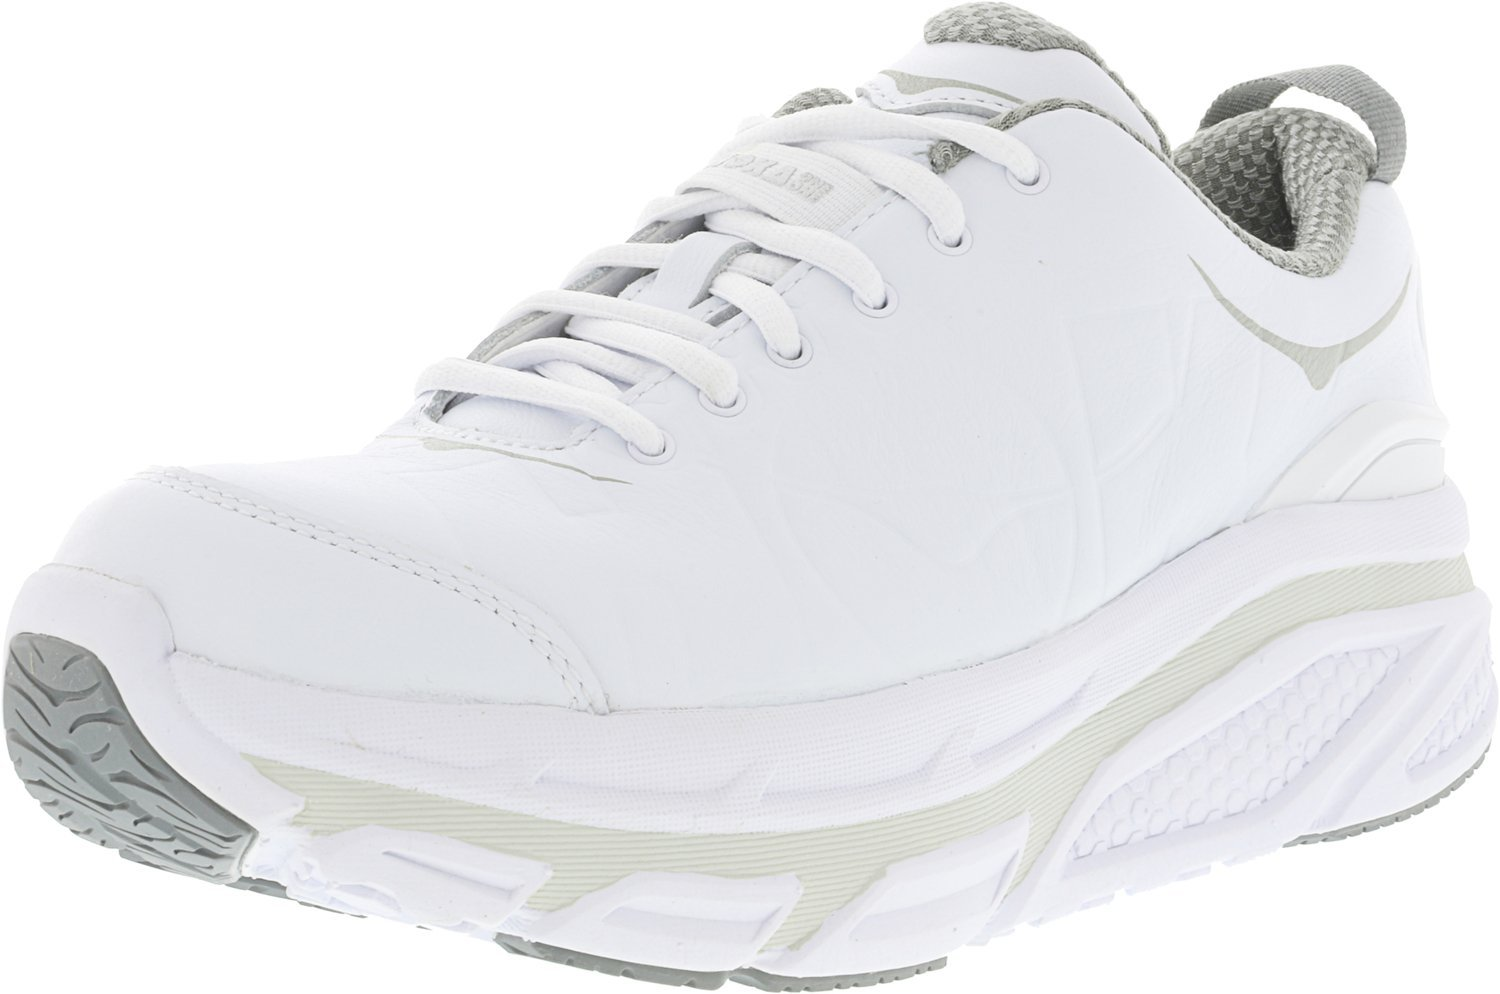 Hoka One One Women's Valor Long Trail Walking Shoe,White,US 9.5 by Hoka One